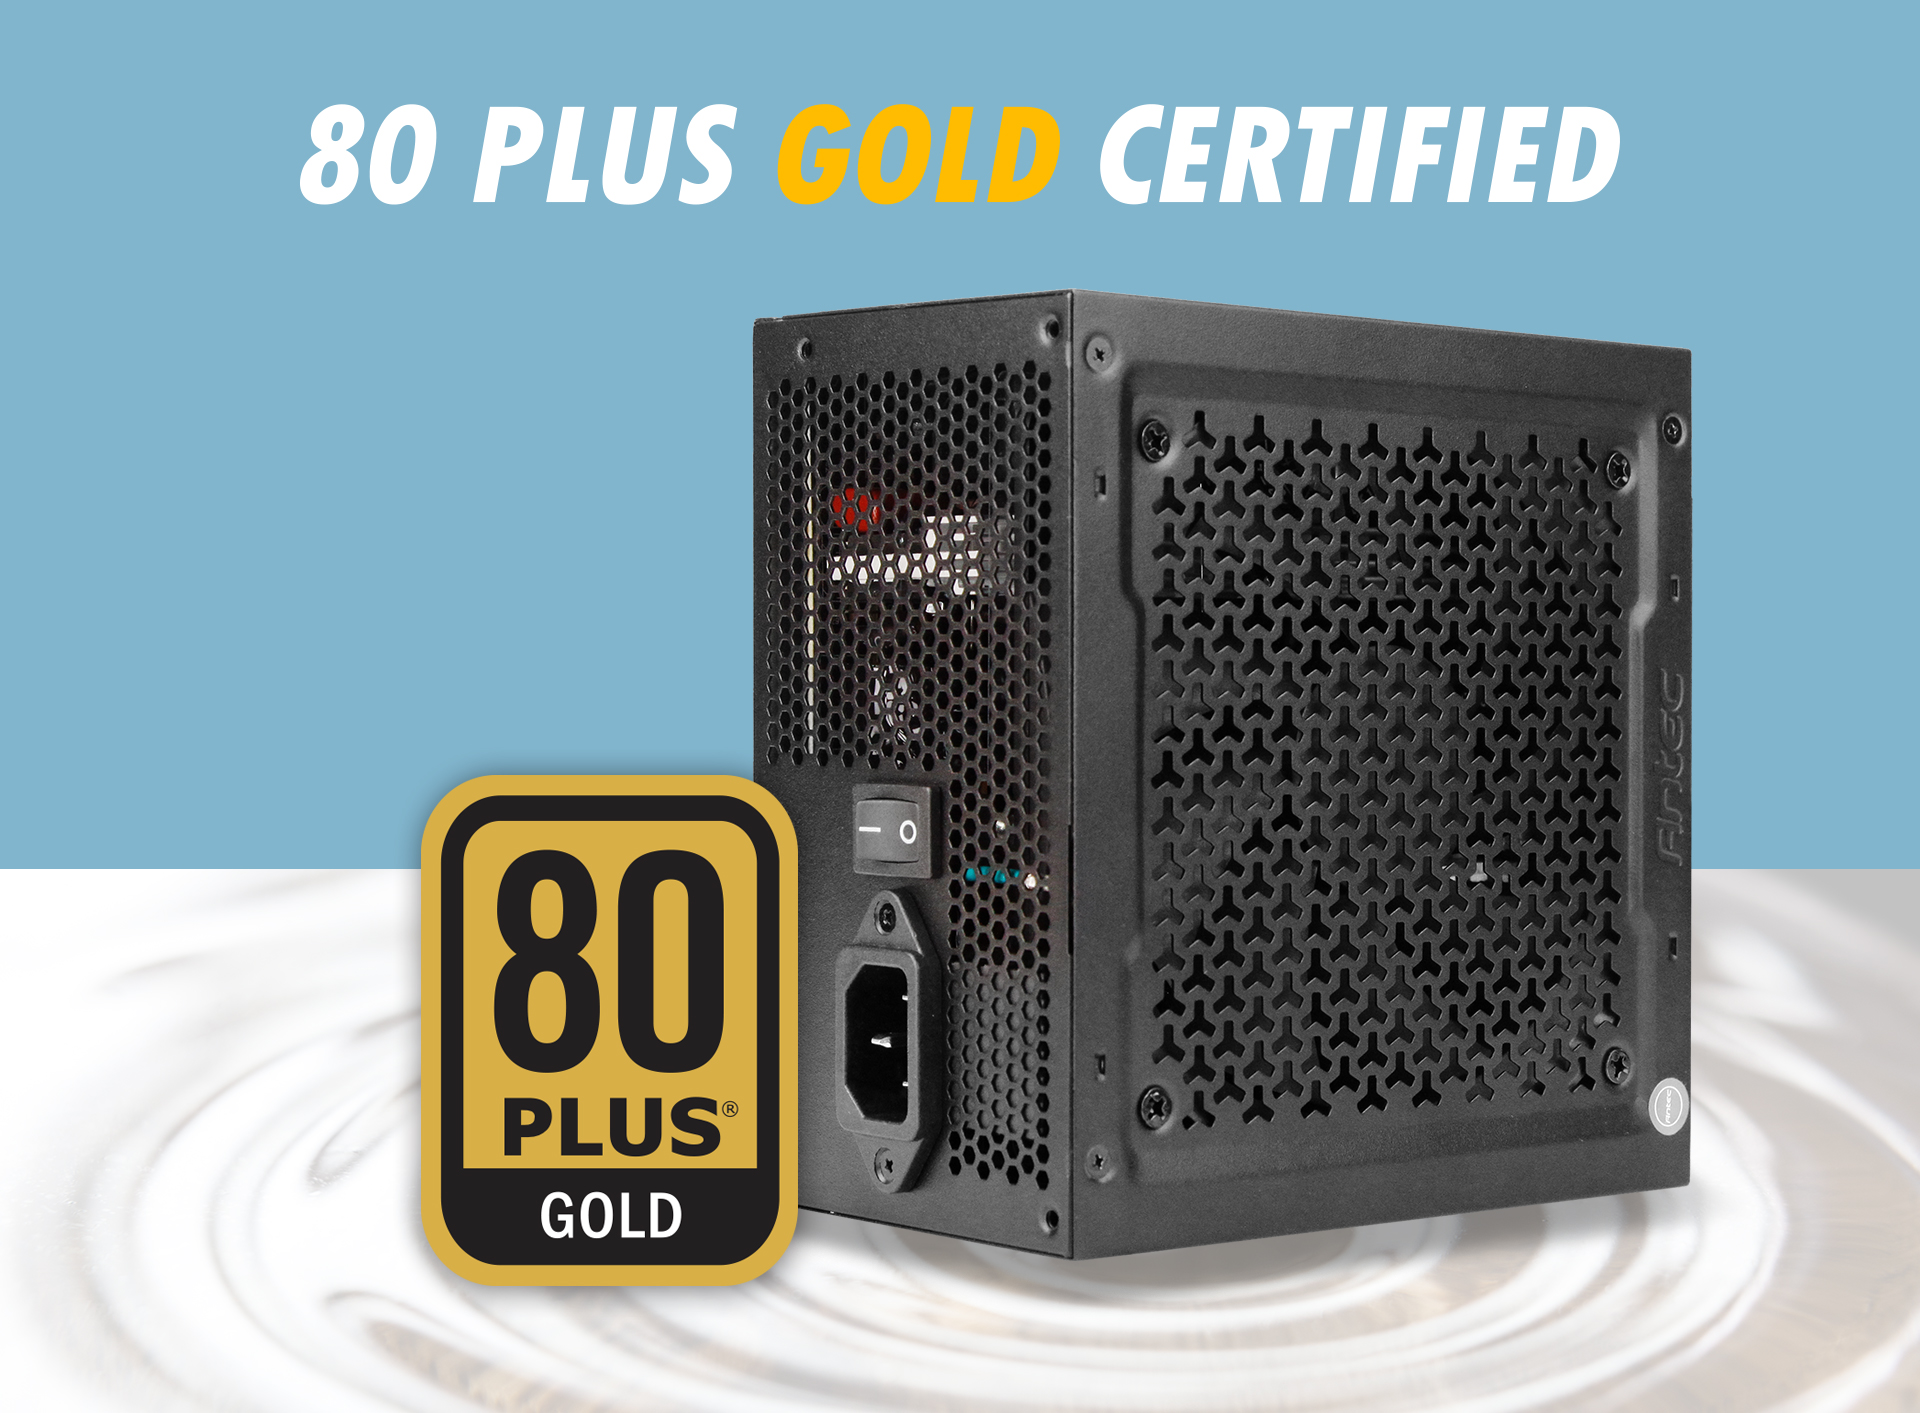 Antec NeoECO Gold ZEN Series NE600G ZEN Power Supply sid view and 80 PLUS GOLD icon